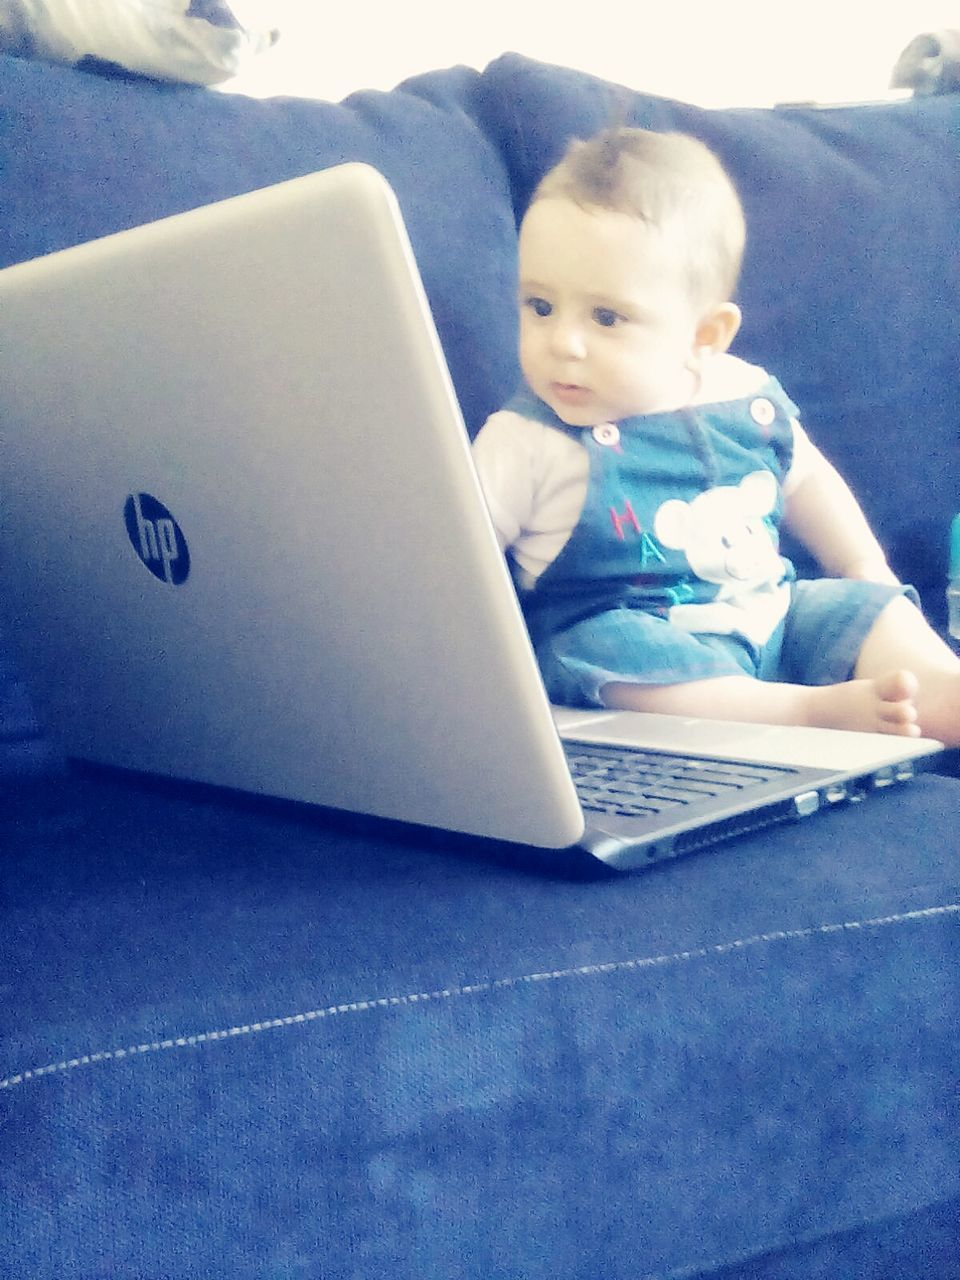 laptop, wireless technology, technology, using laptop, childhood, baby, communication, indoors, computer, one person, real people, sitting, learning, day, keyboard, people